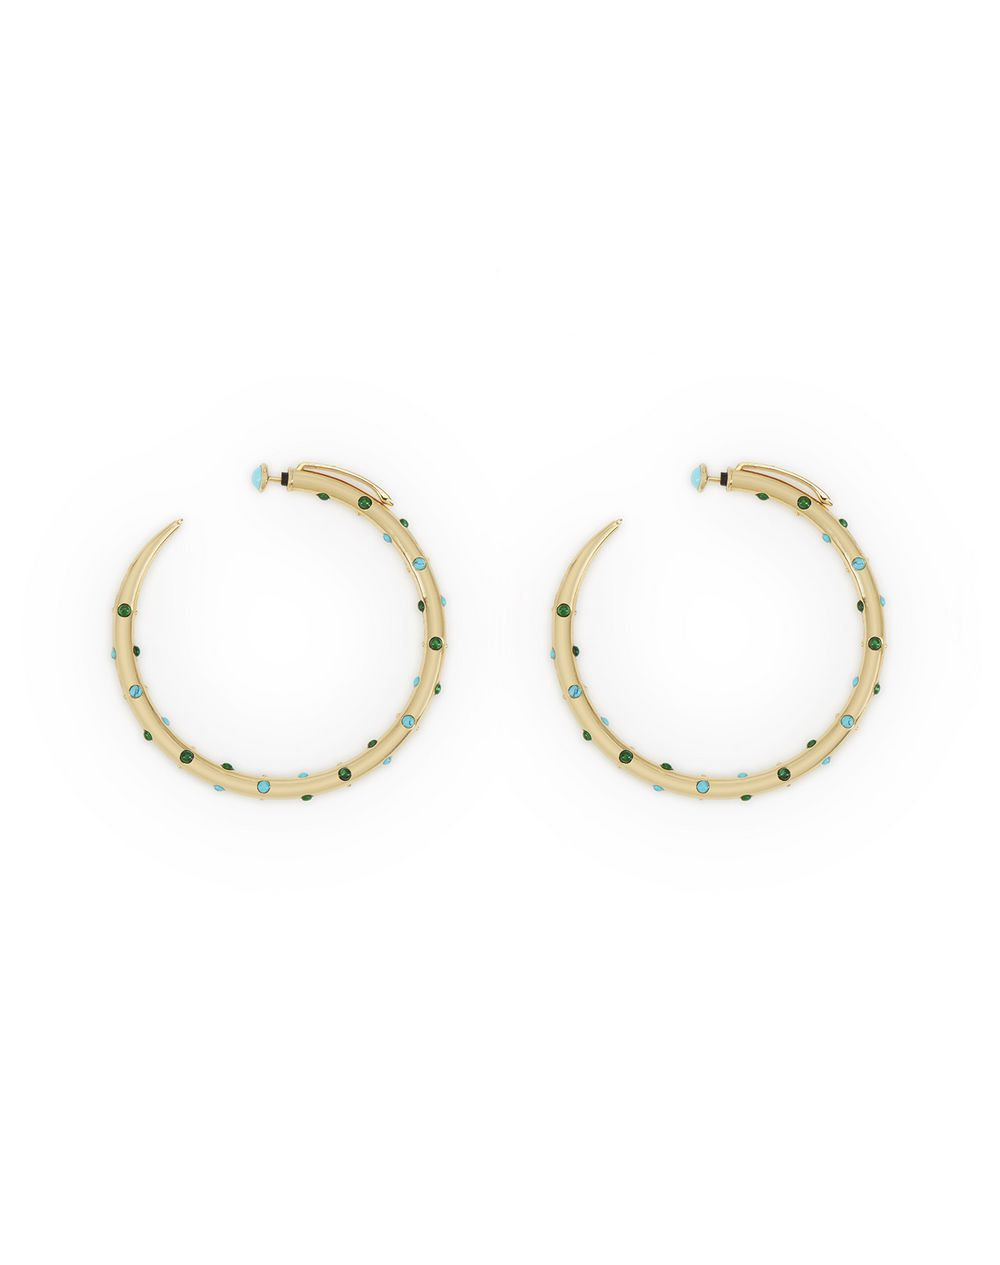 STYLO HOOP EARRINGS - Lanvin